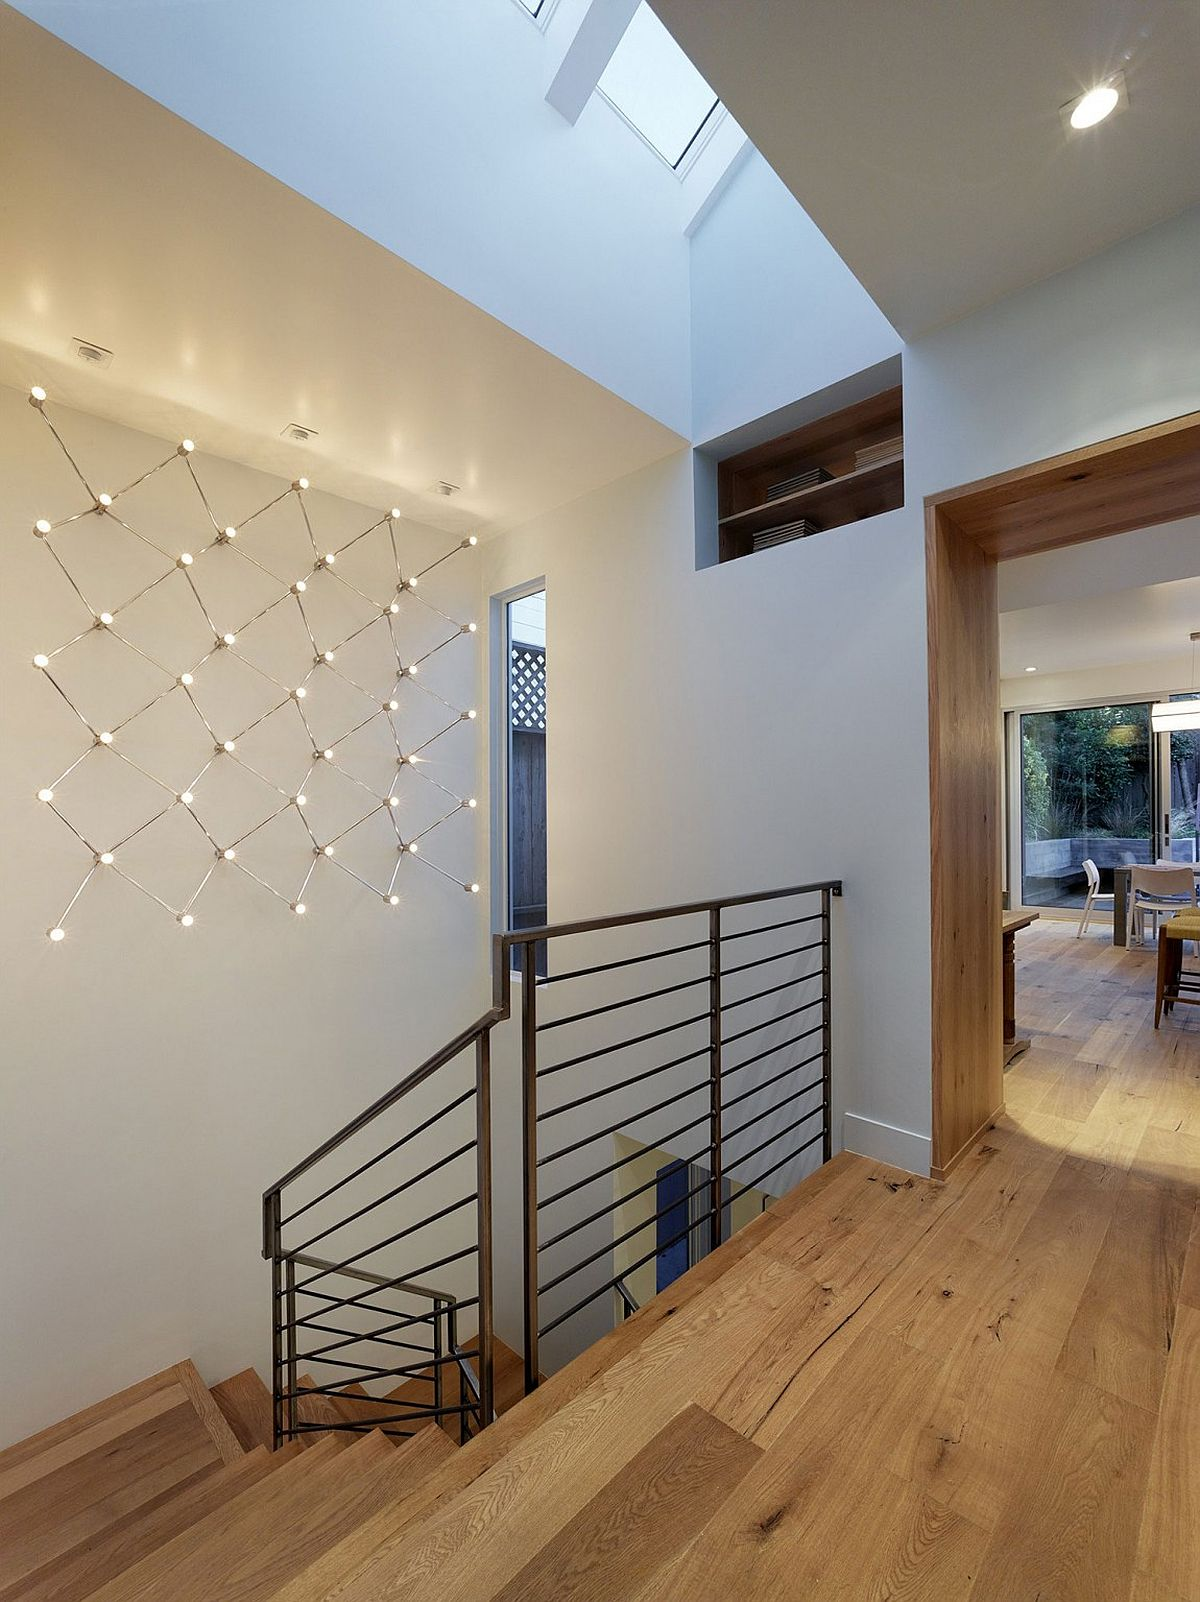 Staircase connects the various levels of the stylish San Francisco home